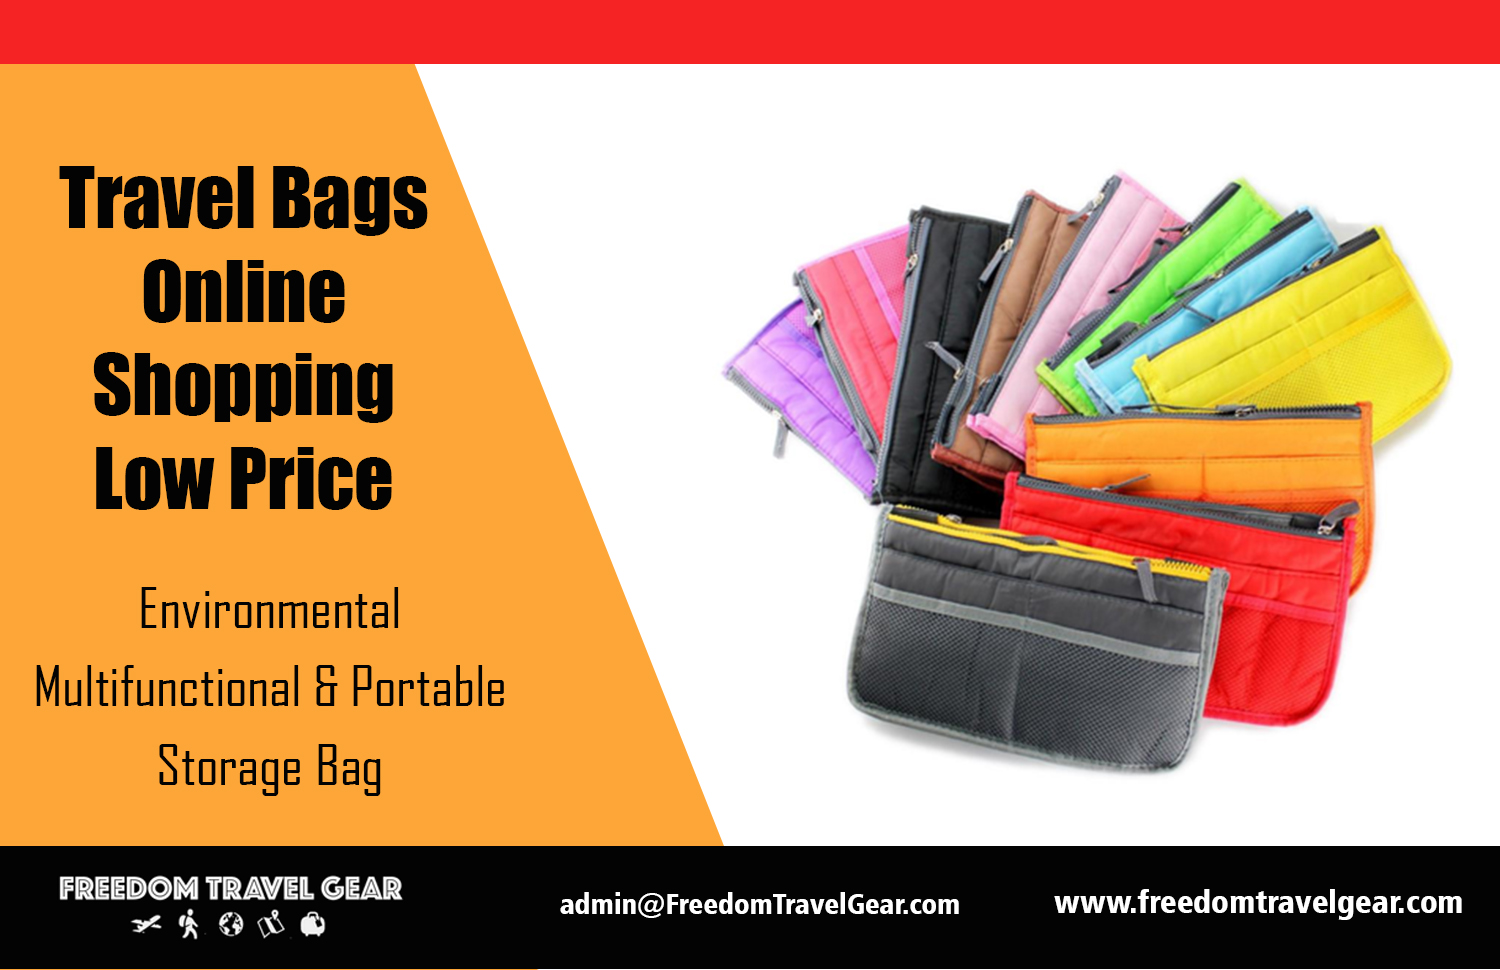 bbf163e7118a8 Travel Bags Online Shopping Low Price | https://www.freedomtravelgear.com/